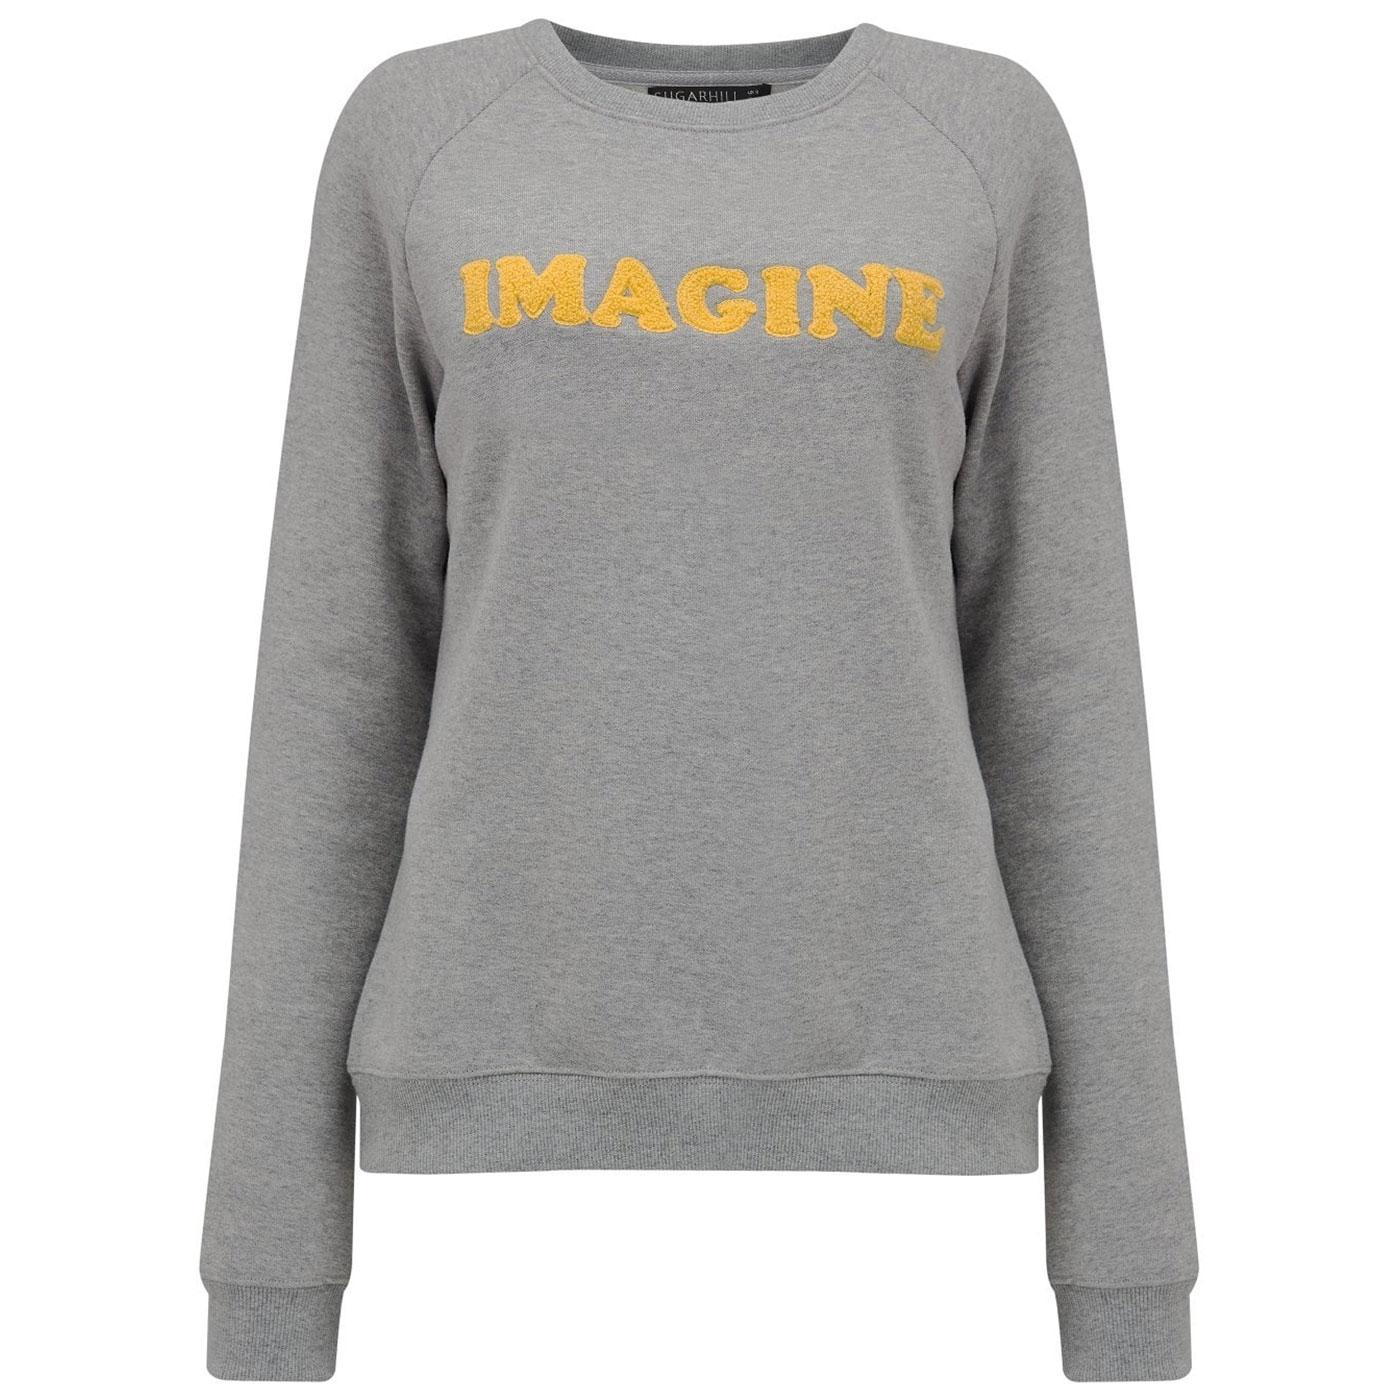 Laurie SUGARHILL BOUTIQUE Imagine Sweatshirt Grey